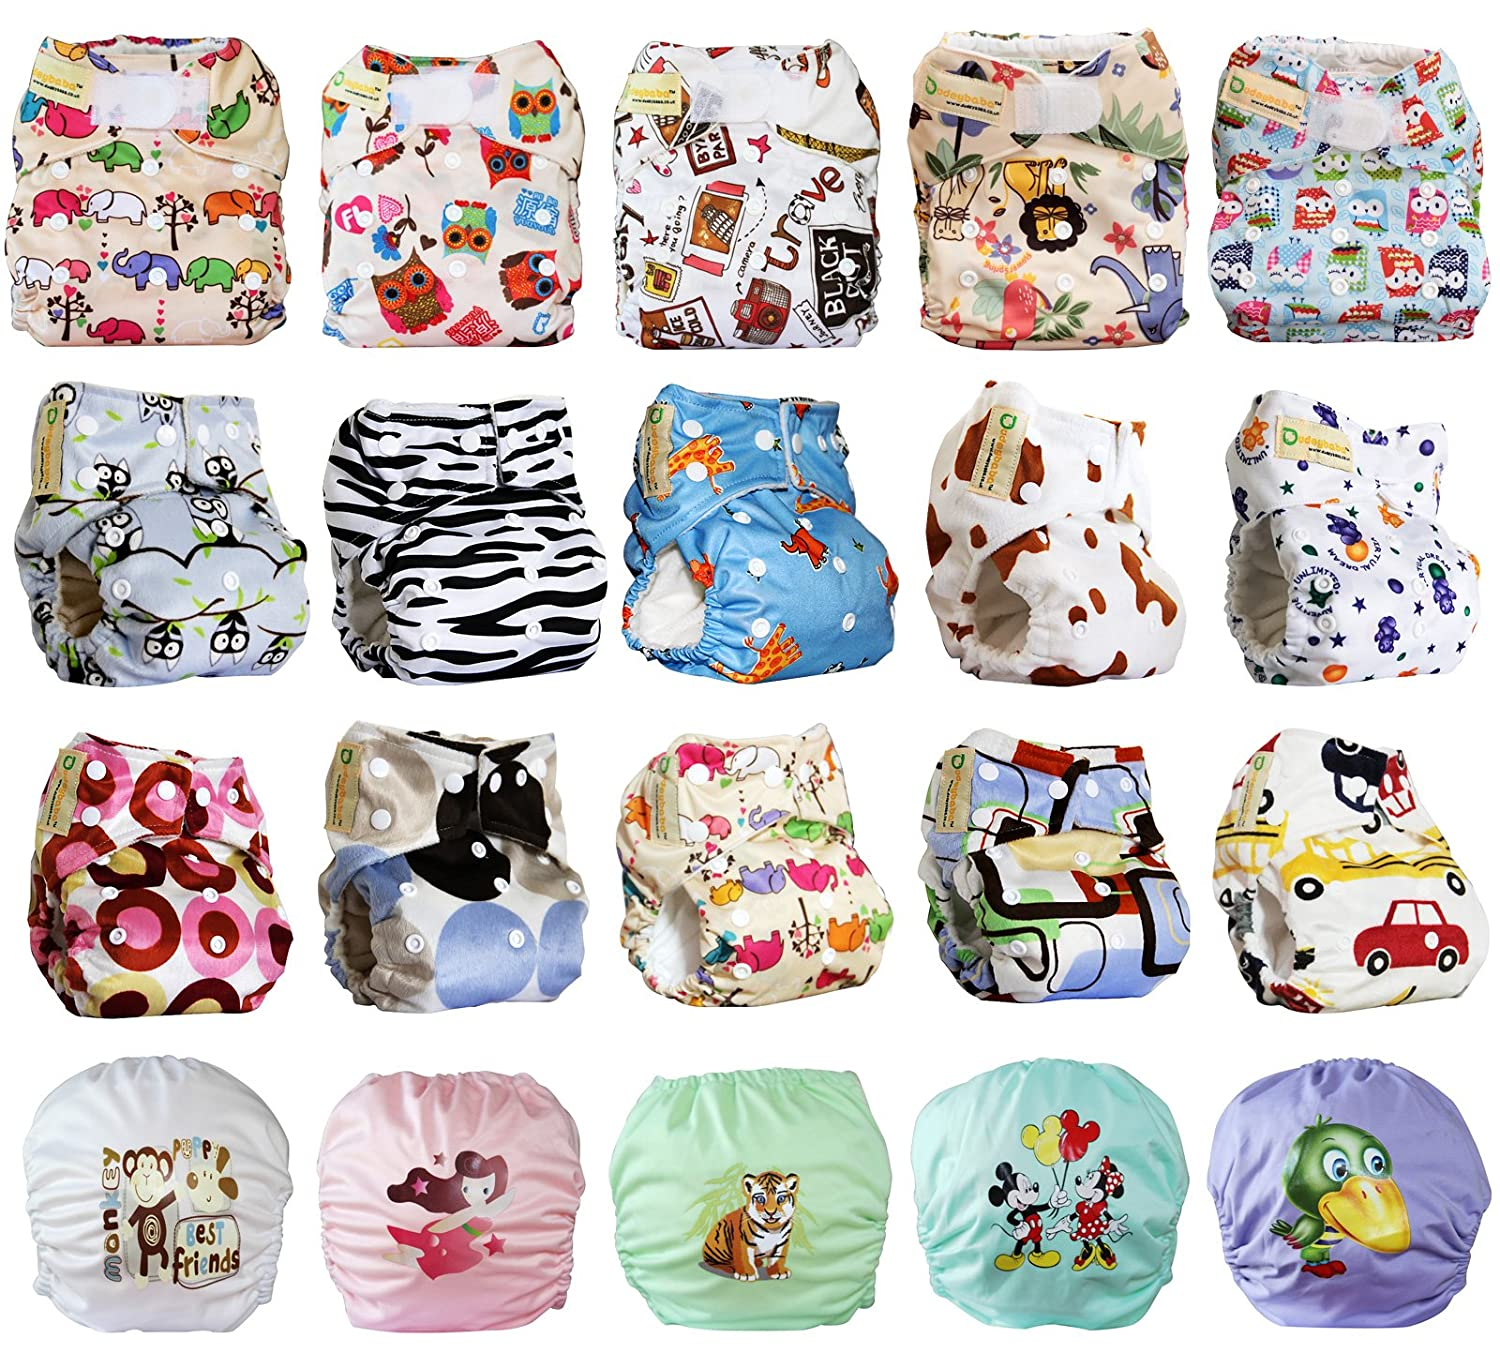 Dudeybaba Reusable Pocket Nappies - For Boy/Girl/Unisex - Suitable Random Choice (Boy)